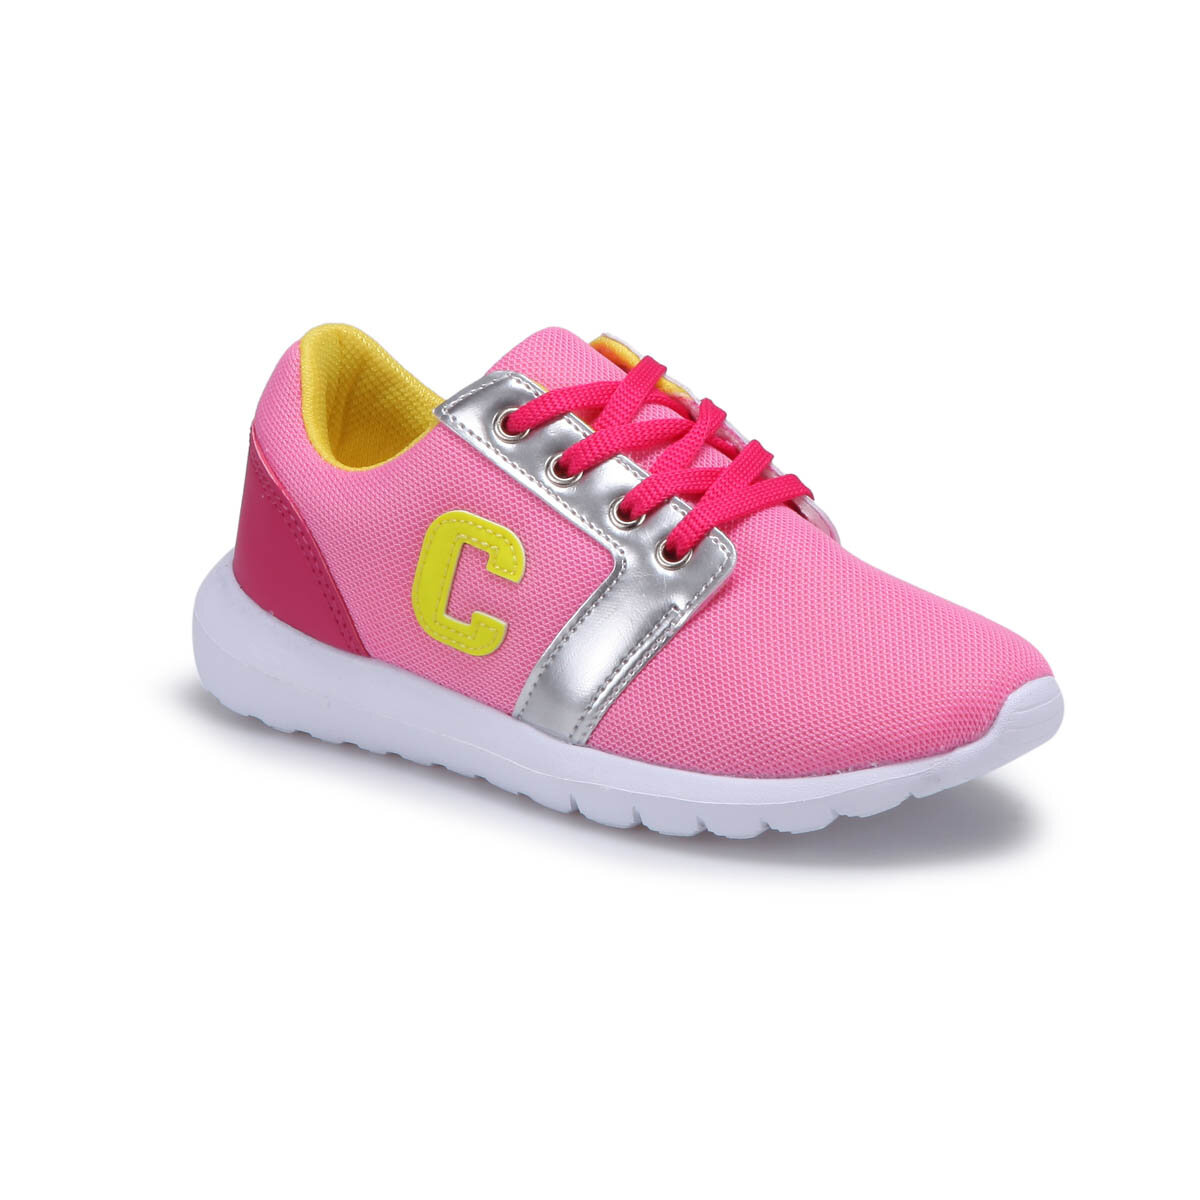 FLO TALISCA Pink Female Child Sneaker Shoes I-Cool